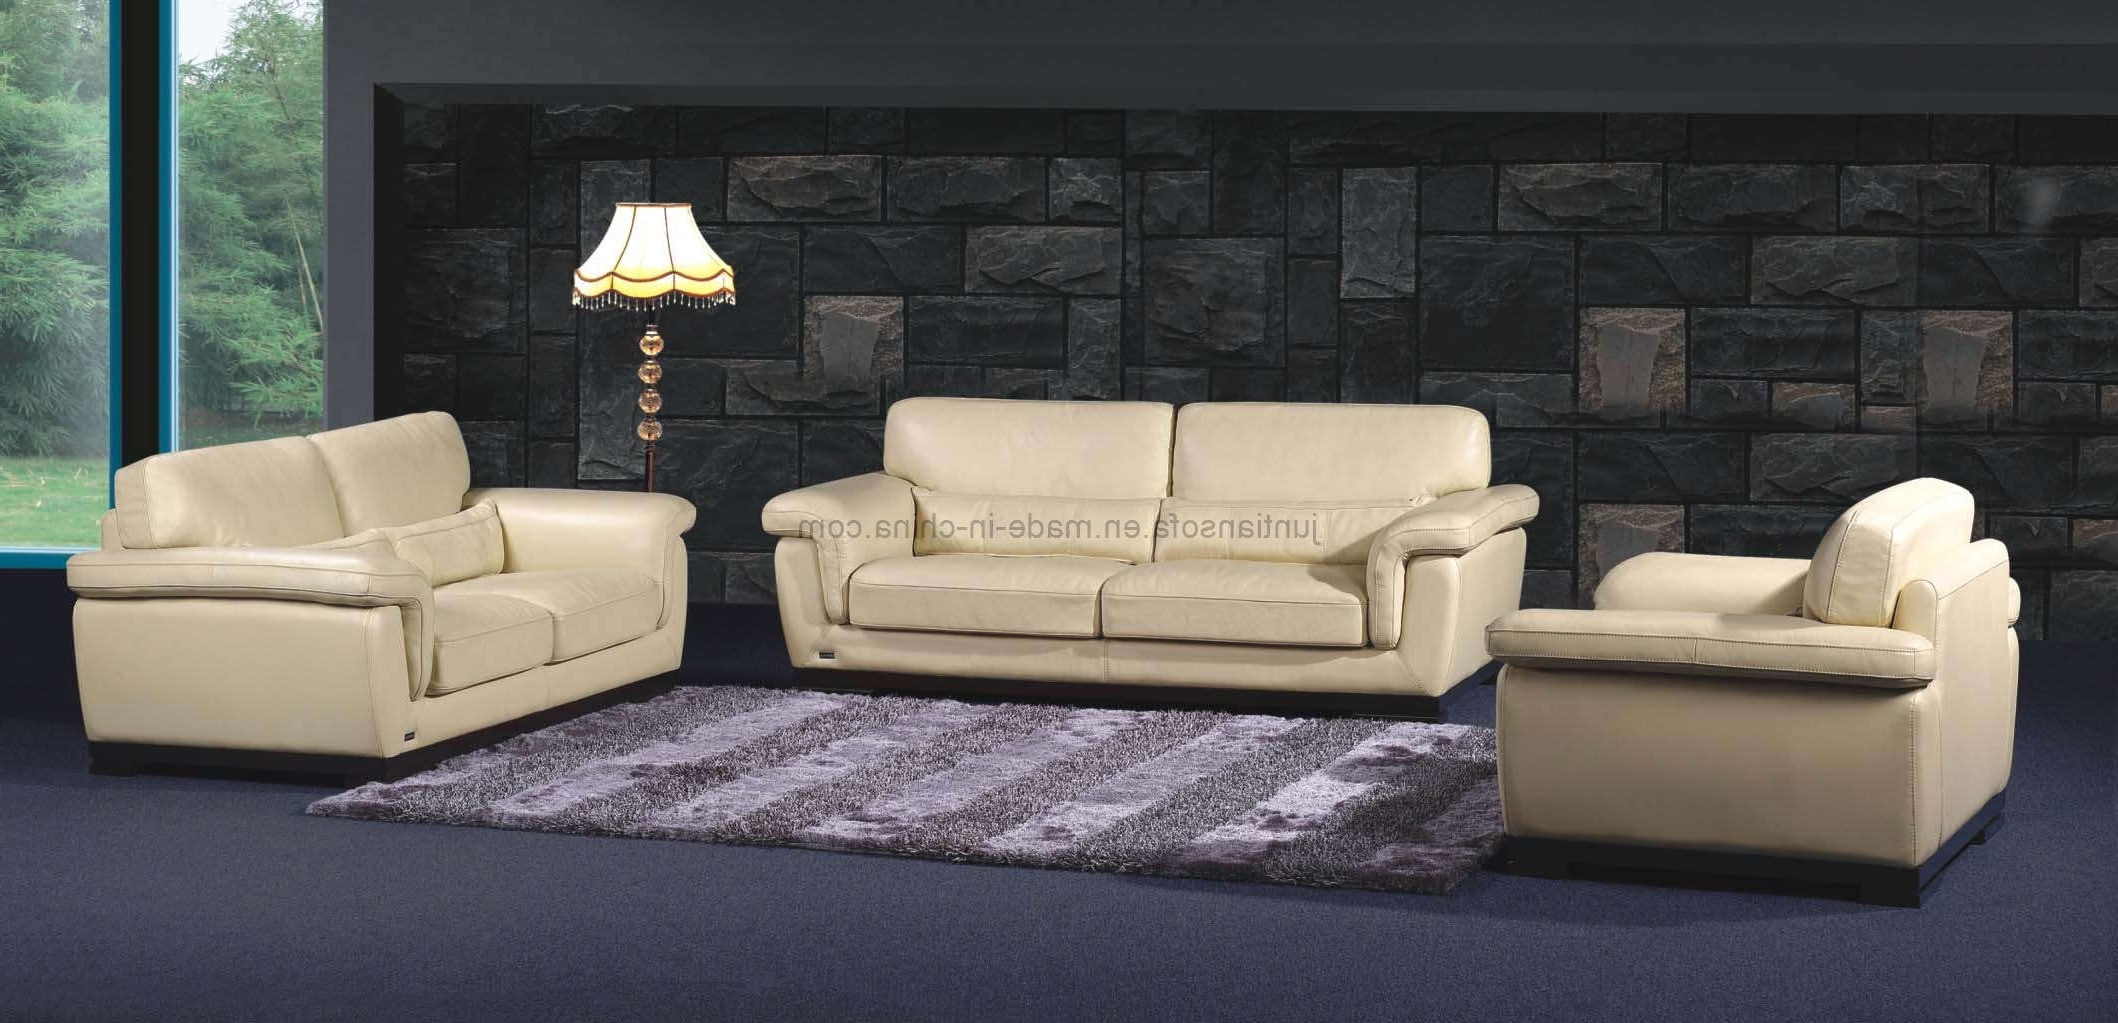 Lovely High Quality Sectional Sofa 30 For Sofa Room Ideas With Inside Fashionable High Quality Sectional Sofas (View 2 of 15)